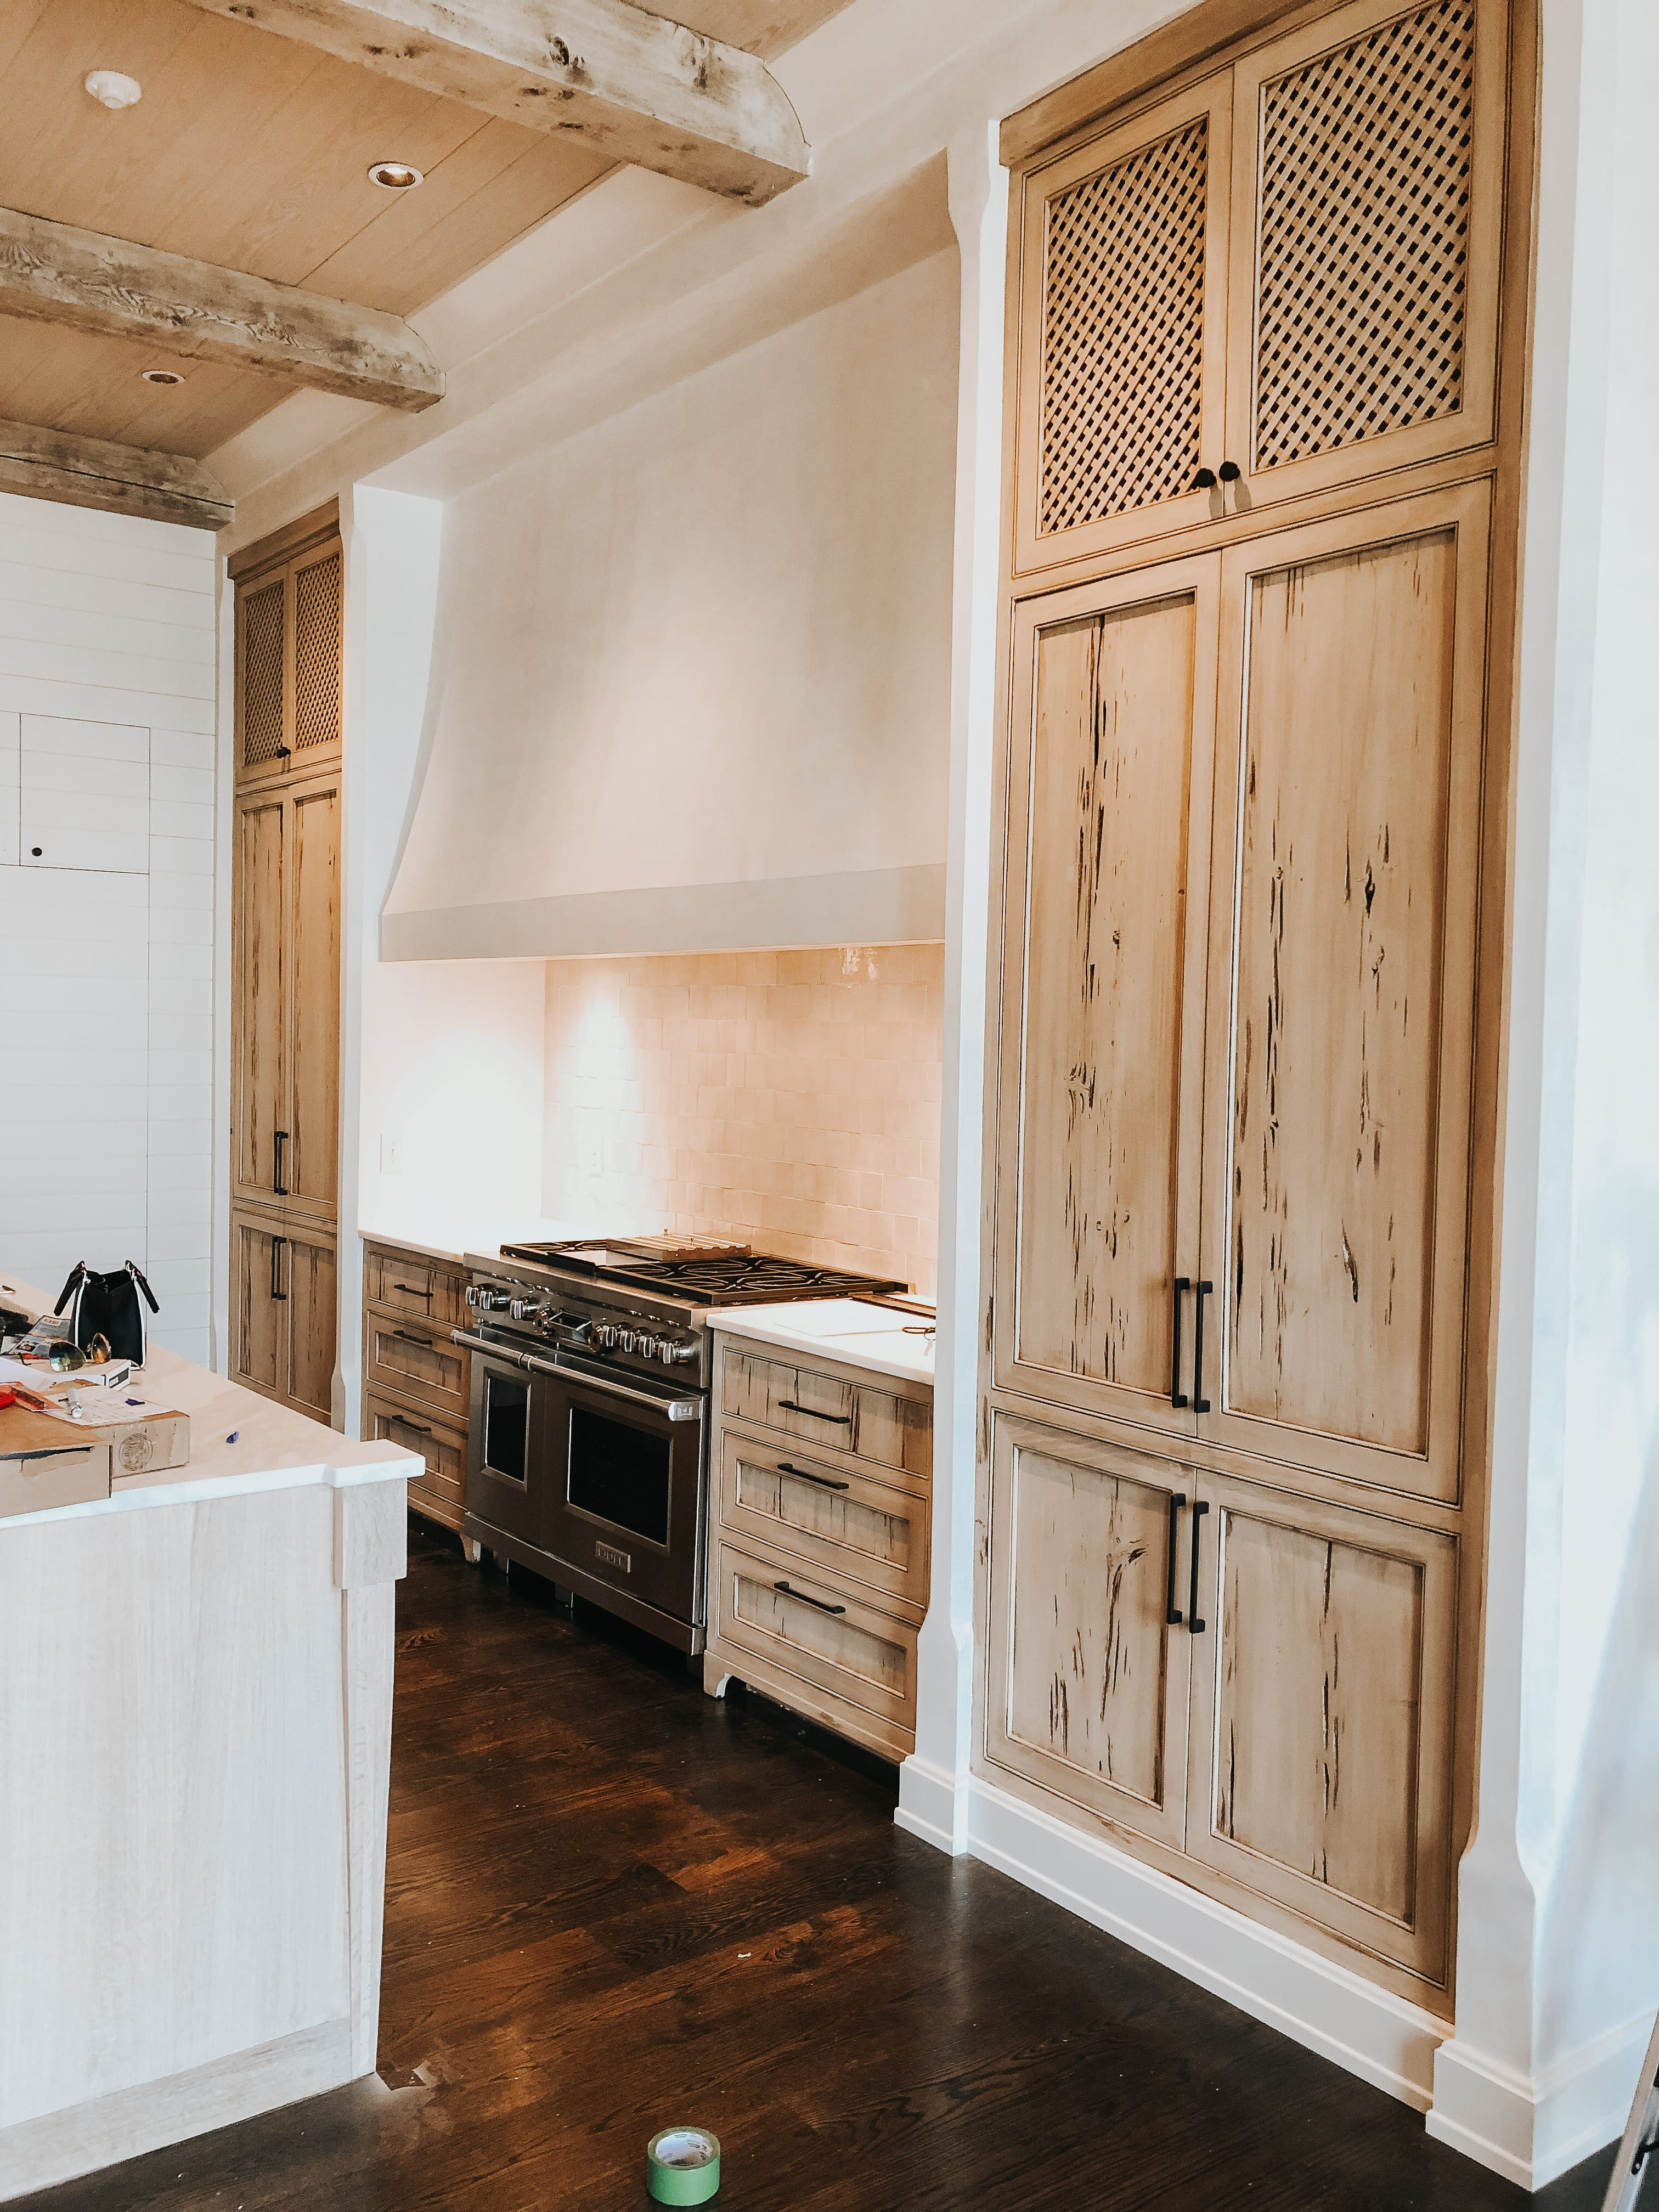 Beautiful Pecky cypress and oak kitchen we did designed by @adamsthom. Home built by @francisbryantconstruction